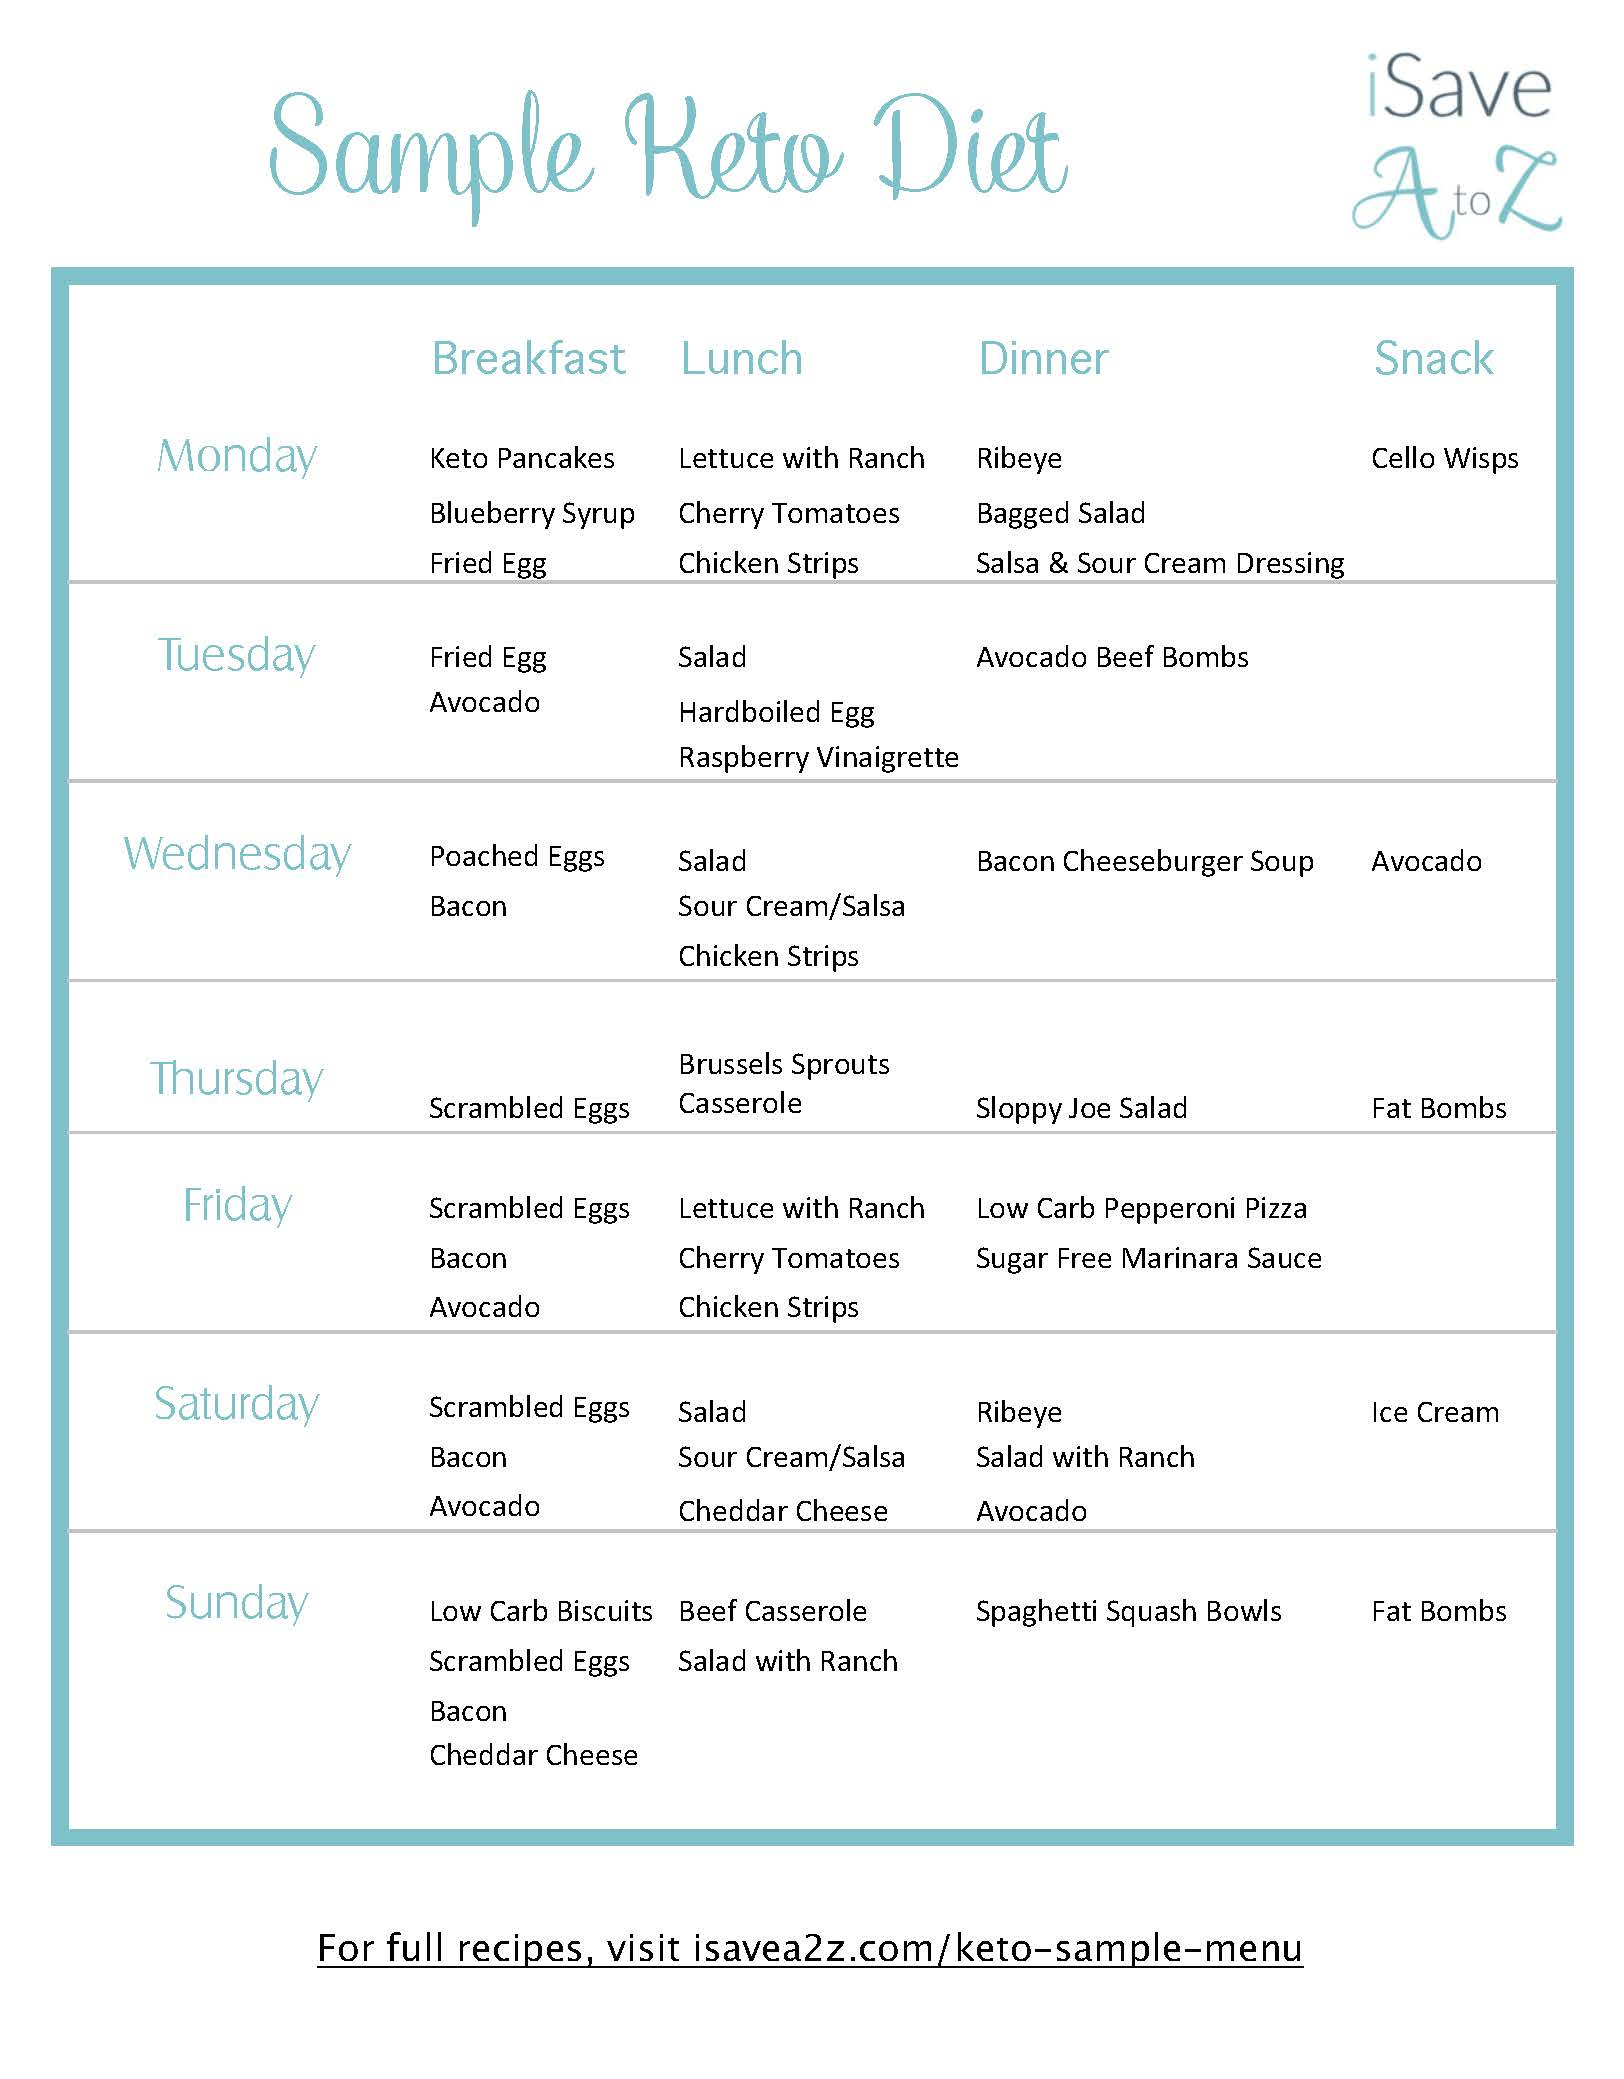 Keto Sample Menu 7 Day Plan - Isavea2Z - Free Printable Meal Plans For Weight Loss